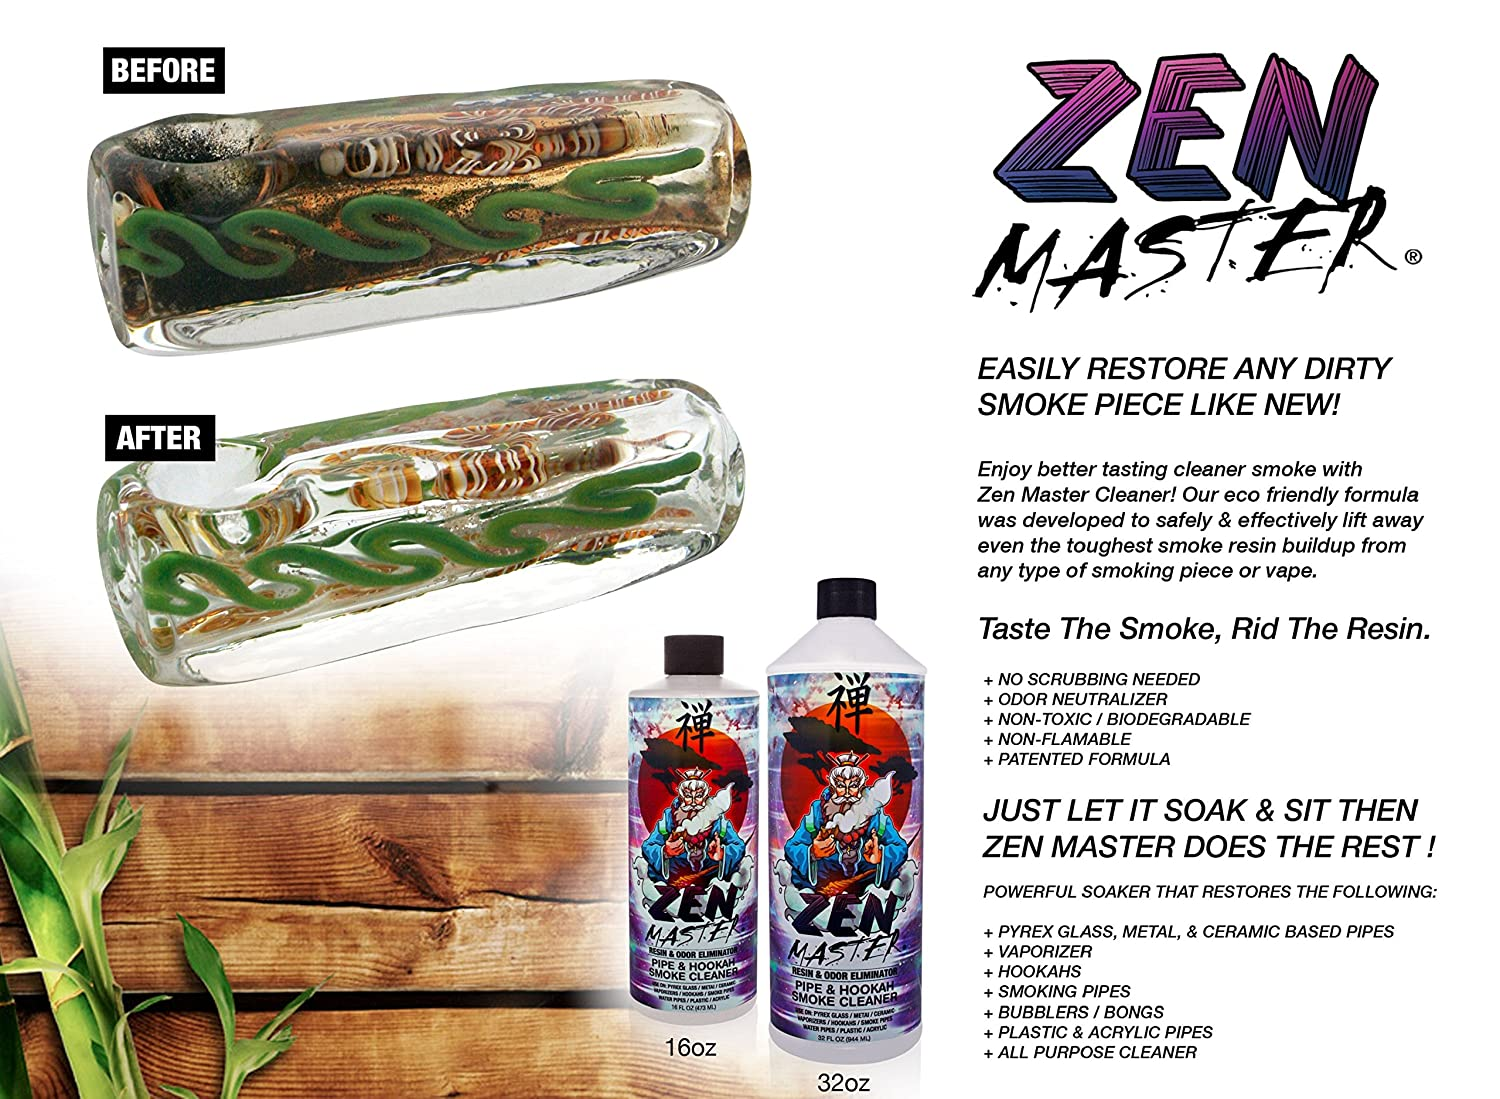 ZEN MASTER GLASS PIPE CLEANER / BONG CLEANER - 32oz Value Size Resin & Odor Eliminator Biodegradable Formula - for maintaining your heady glass